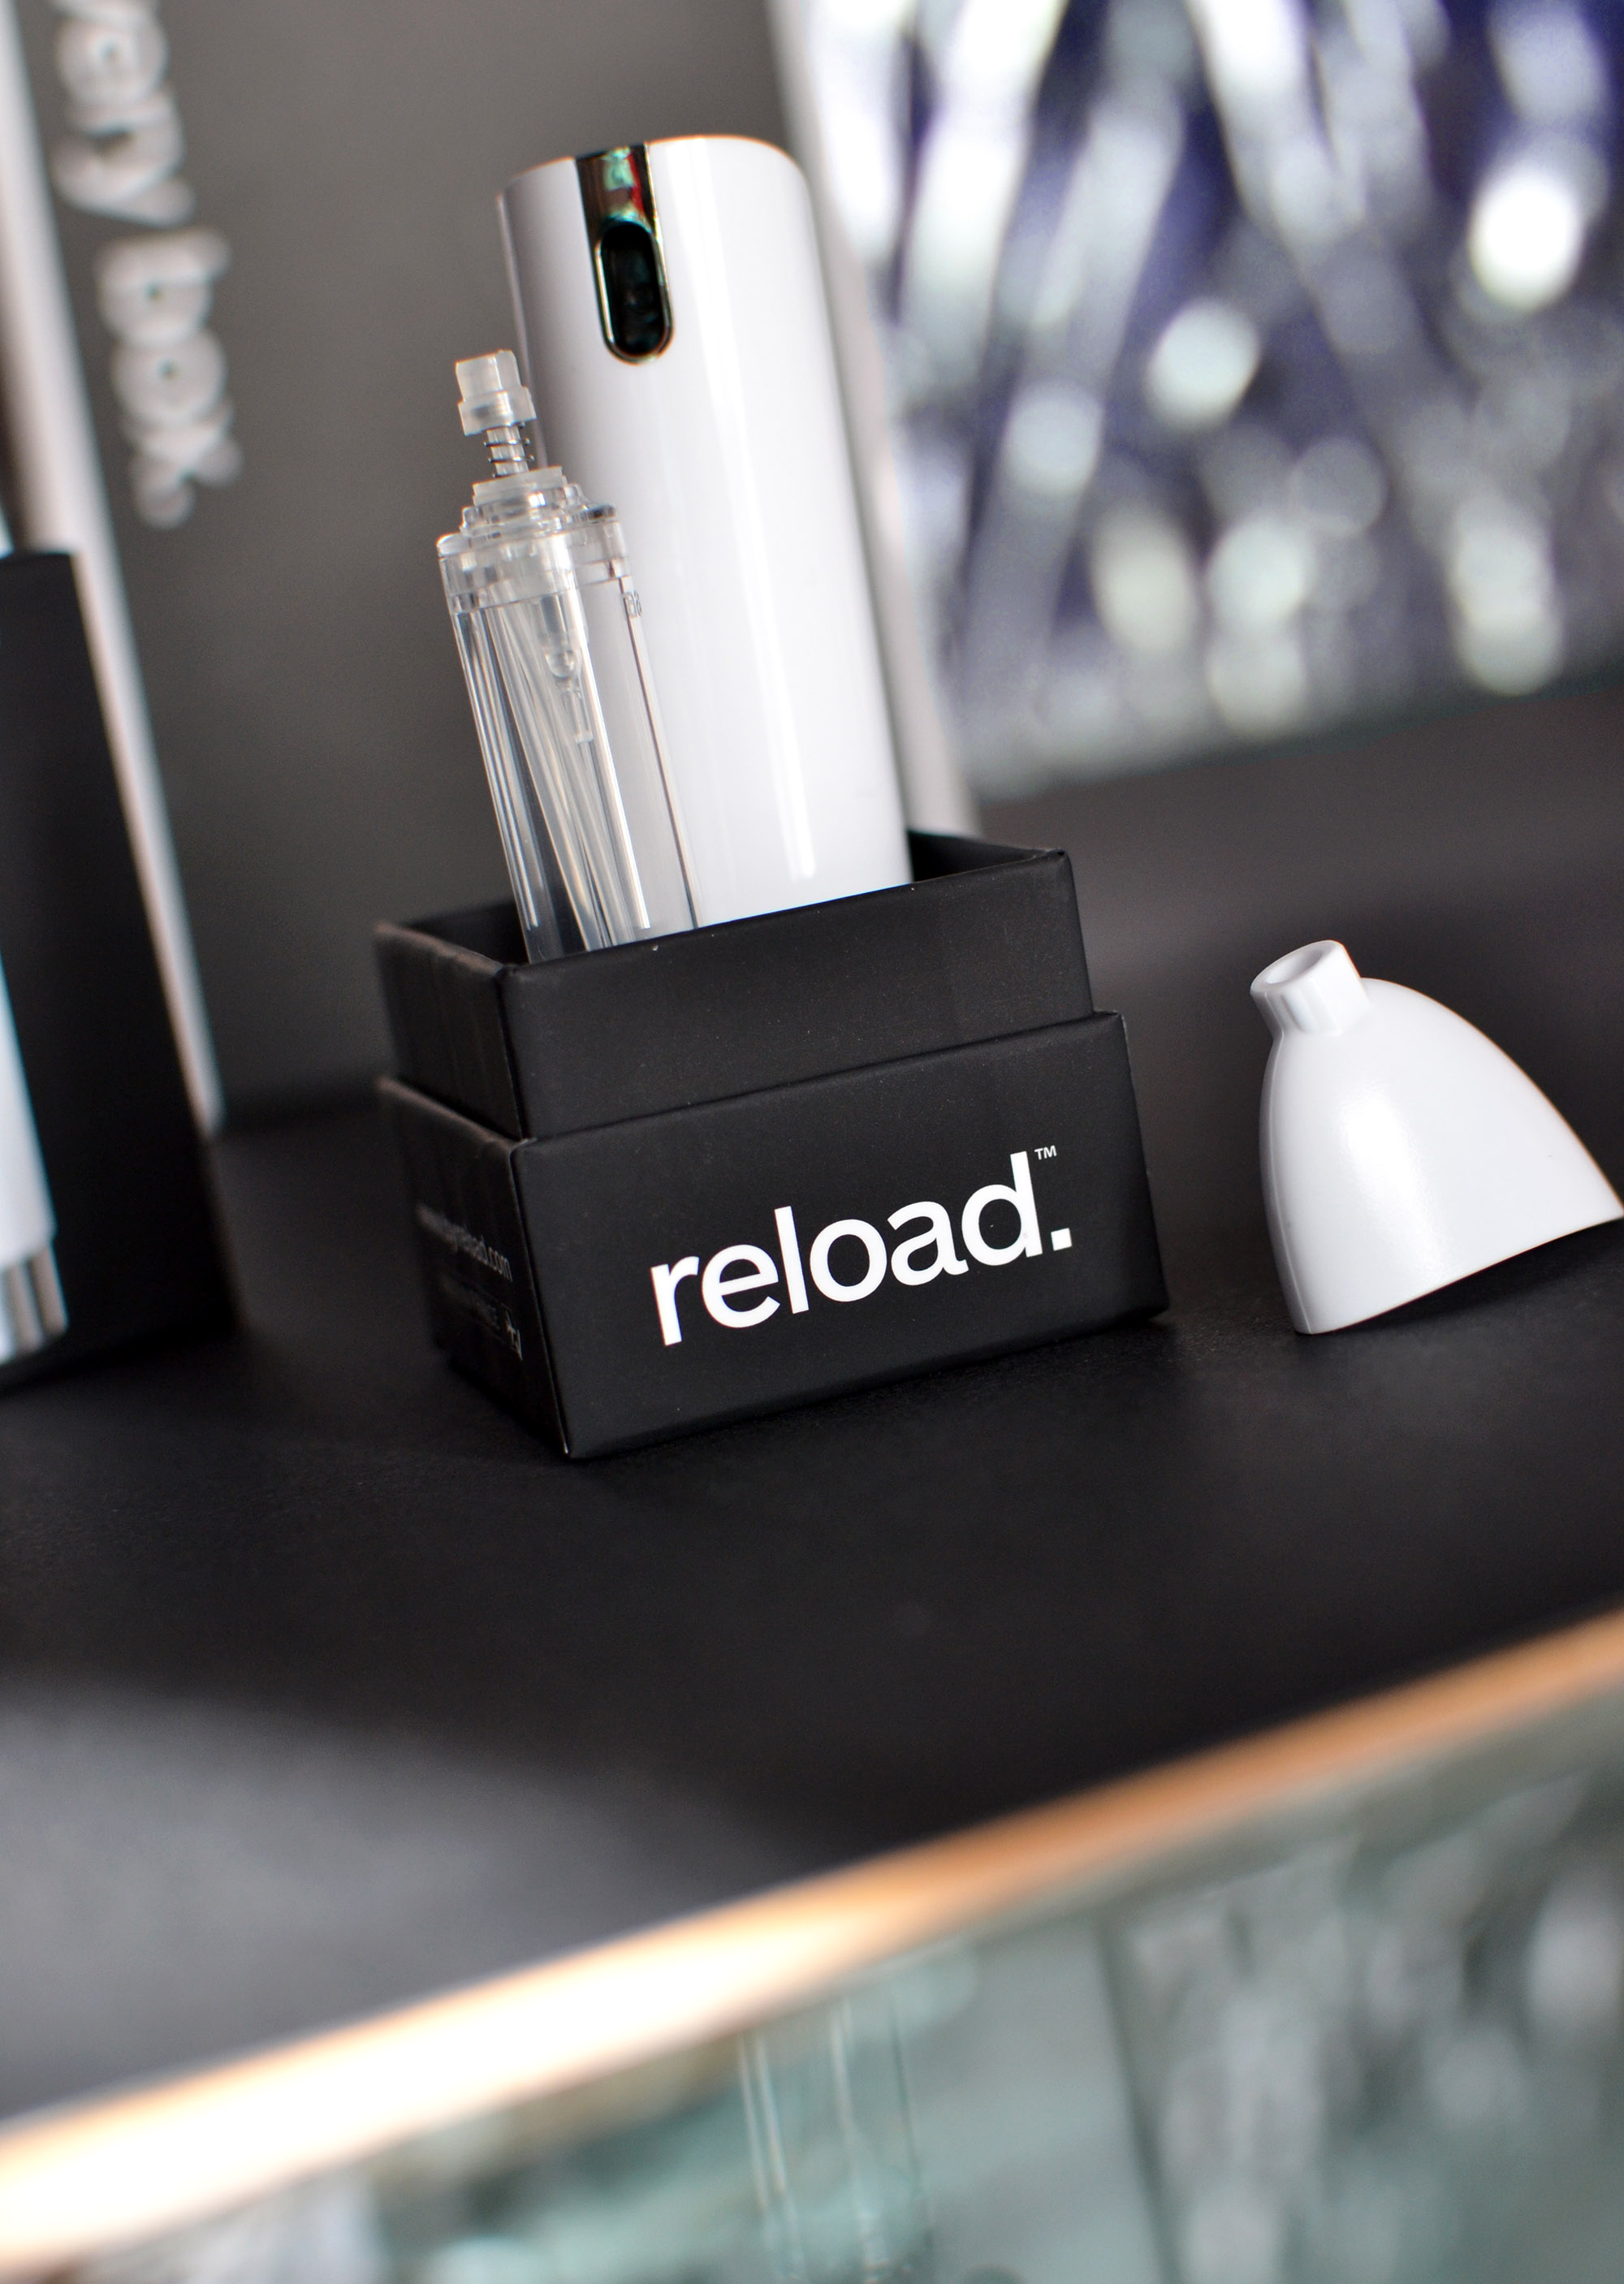 Reload mini-spray